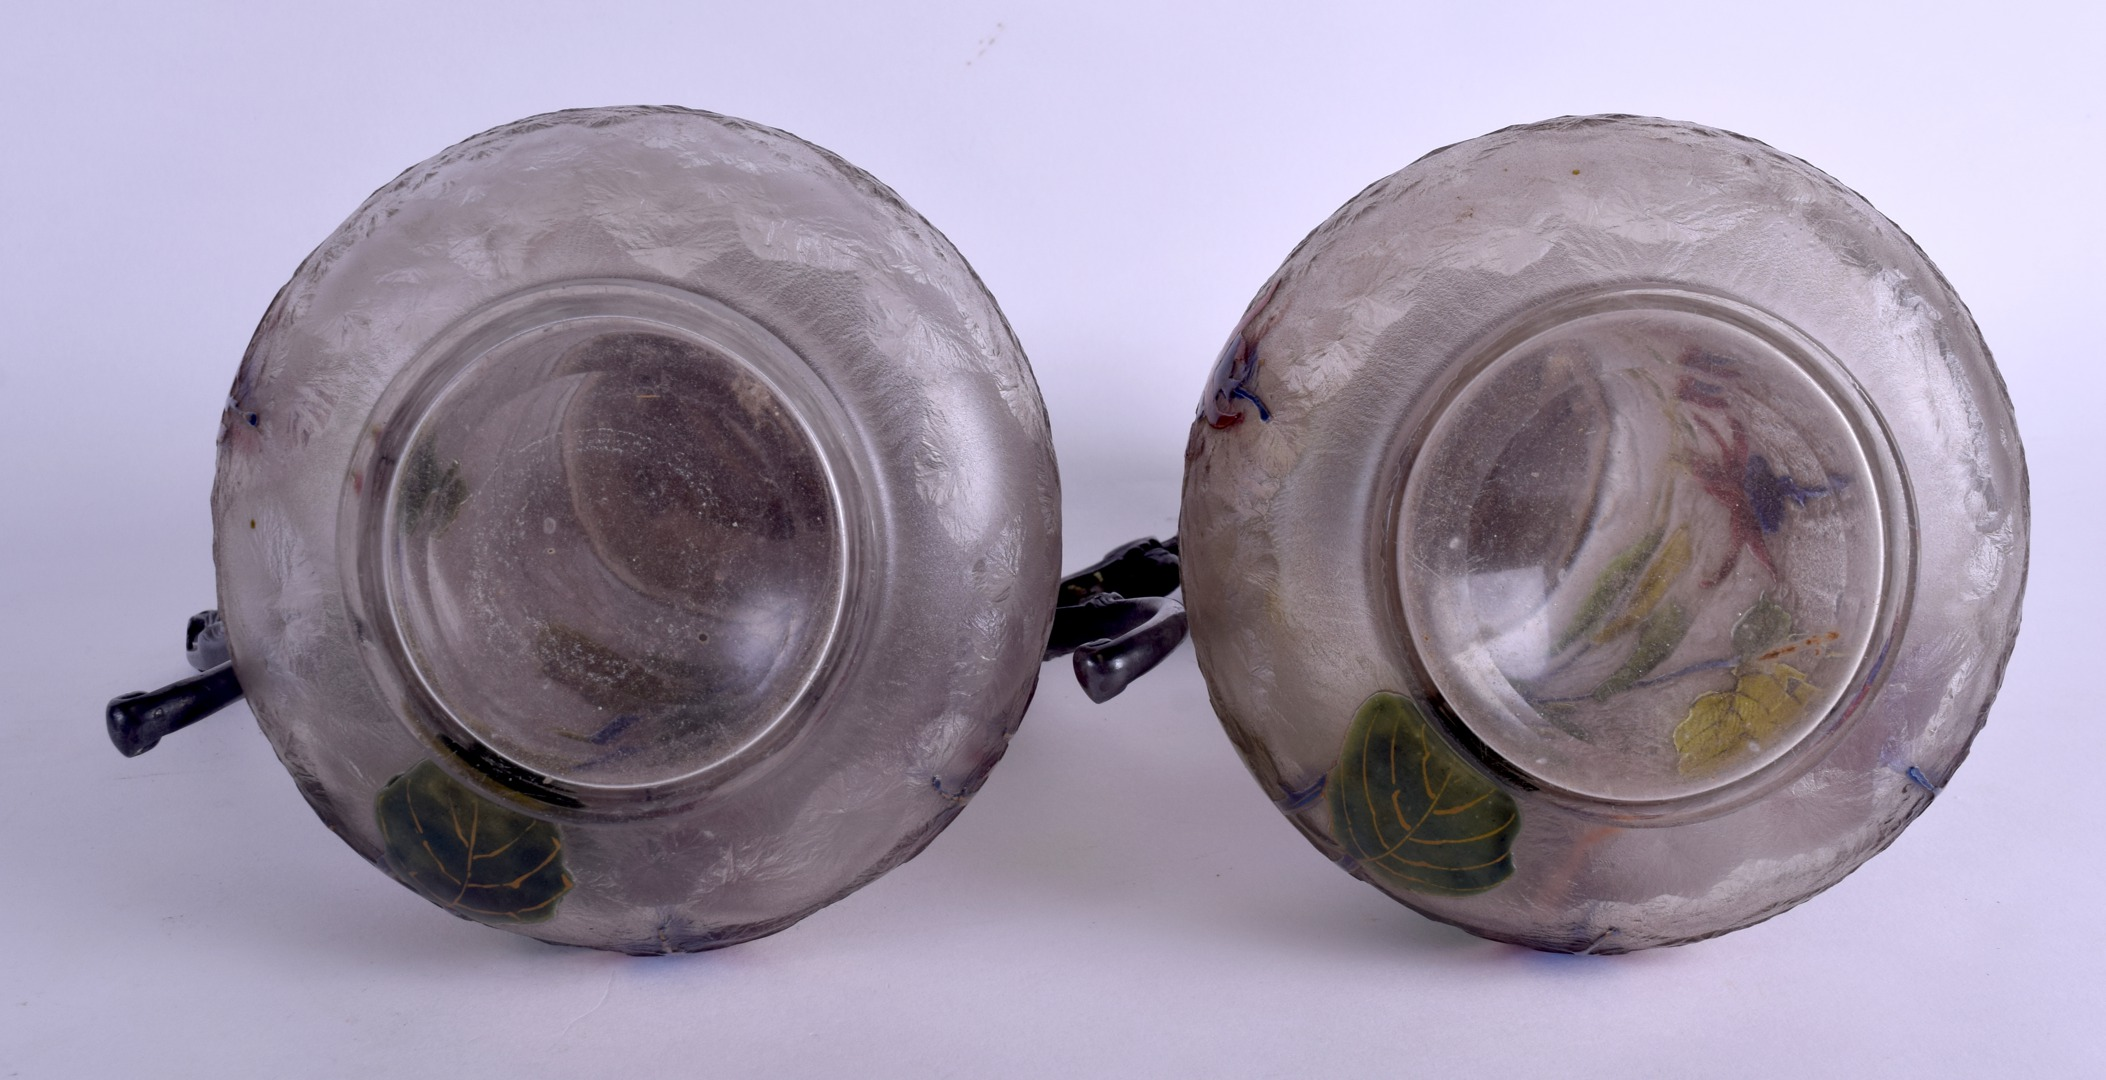 Lot 9 - A LOVELY PAIR OF FRENCH ART NOUVEAU GALLE CAMEO GLASS CLARET JUGS with Christoffel silver plated